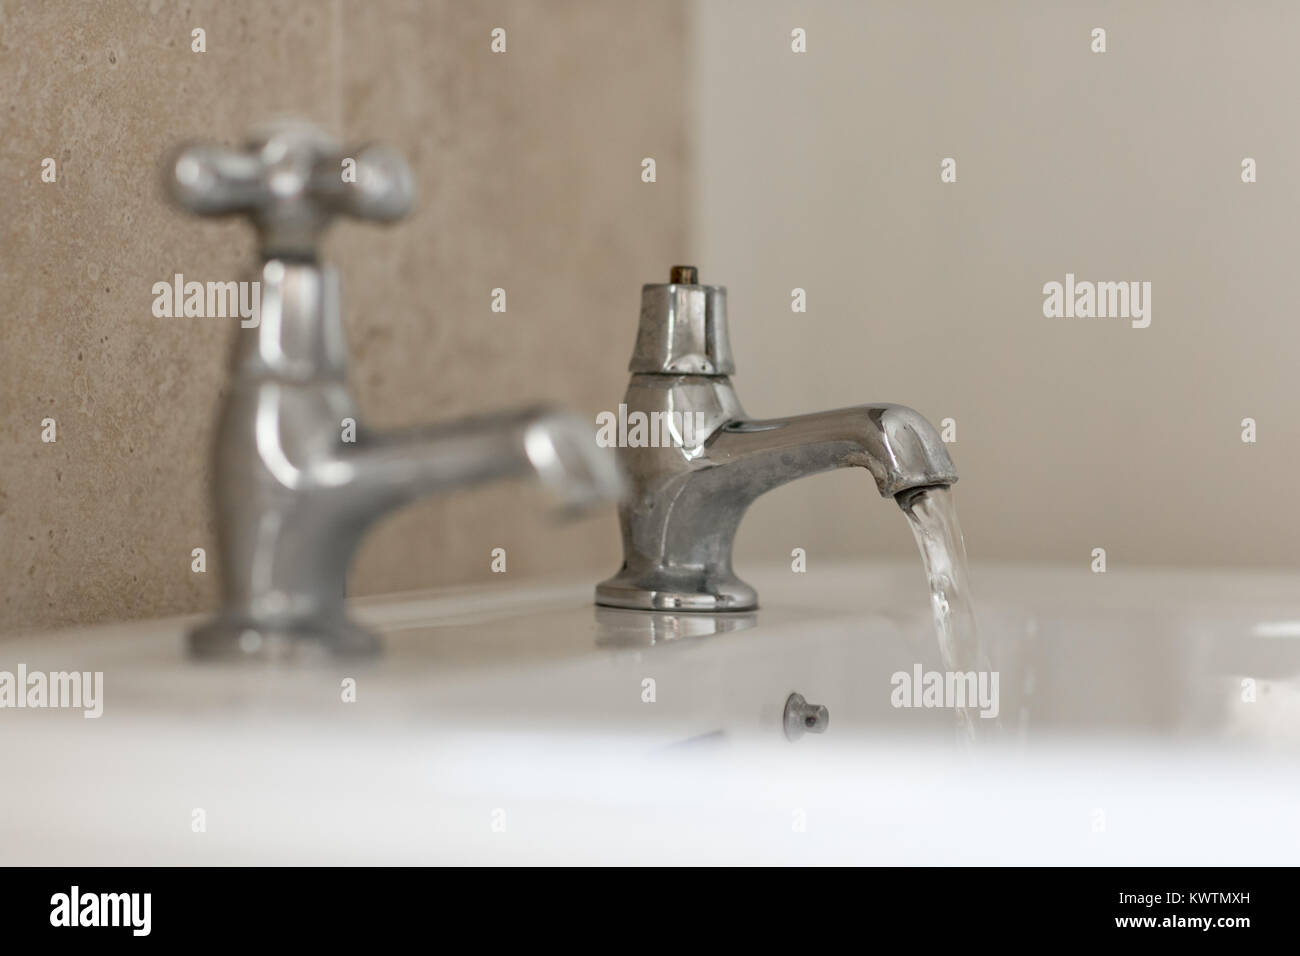 Utility Sink Stock Photos Amp Utility Sink Stock Images Alamy